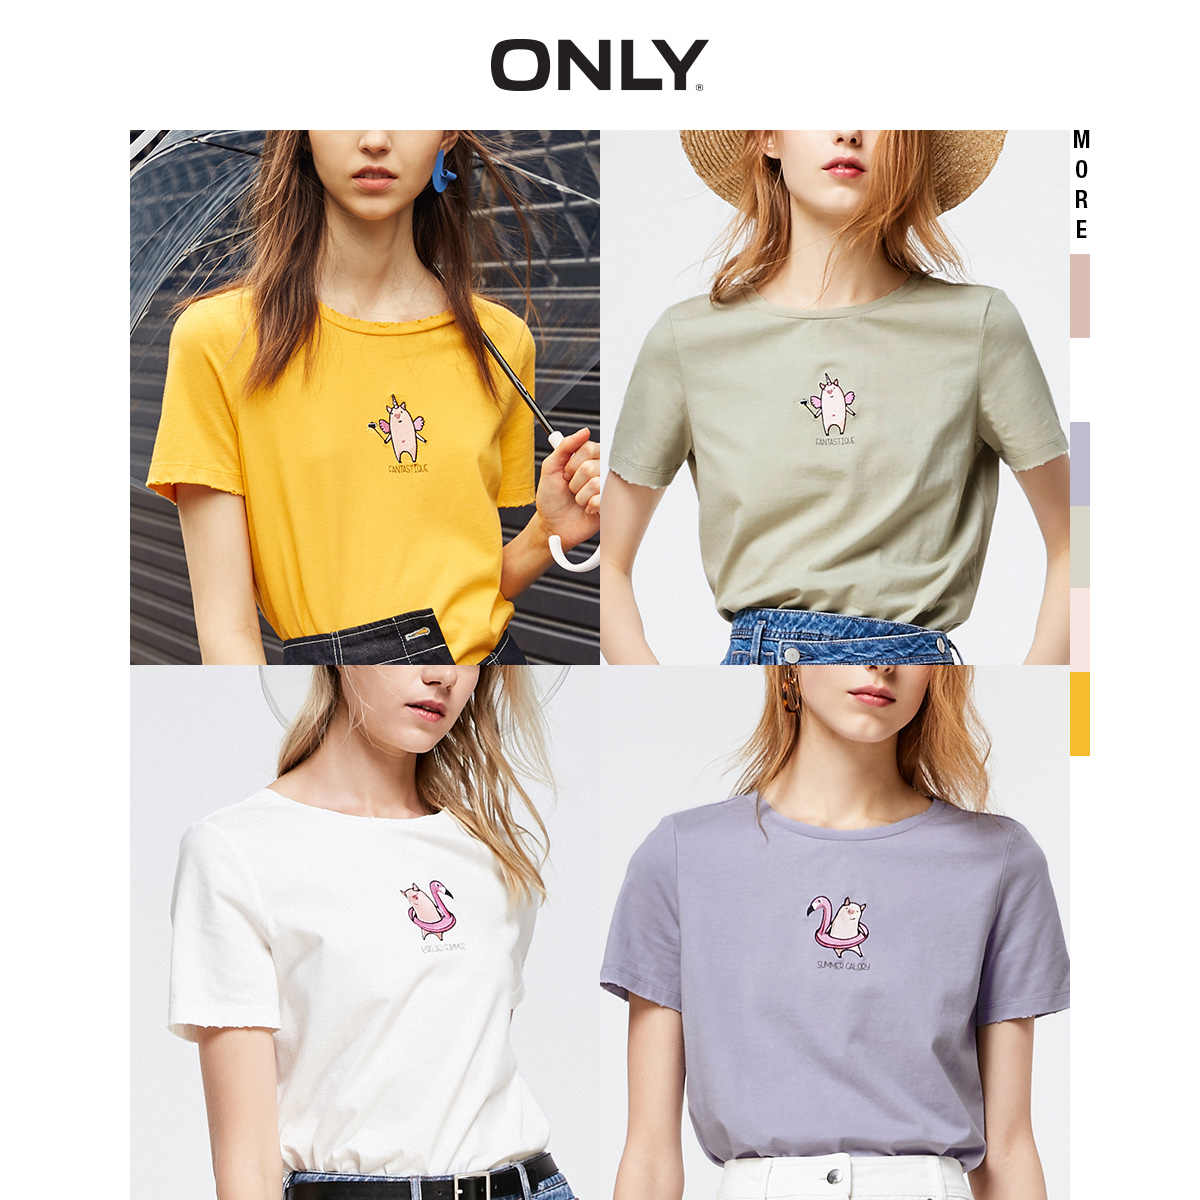 ONLY 2019 Spring Summer New Women's Loose Fit Round Neckline Short-sleeved T-shirt |119101641